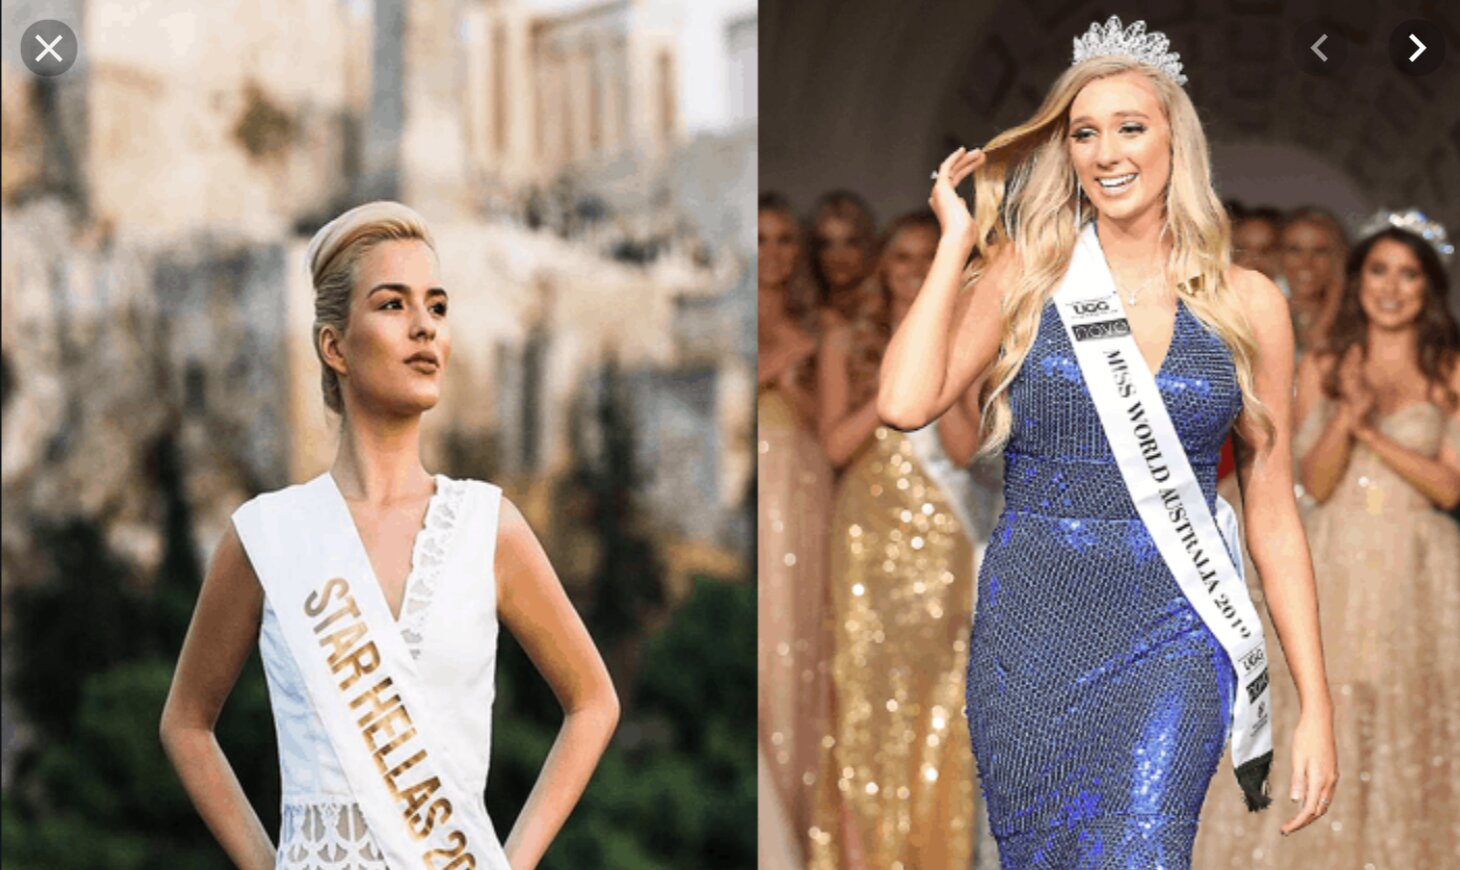 Miss Hellas claims she was viciously attacked by Miss Australia